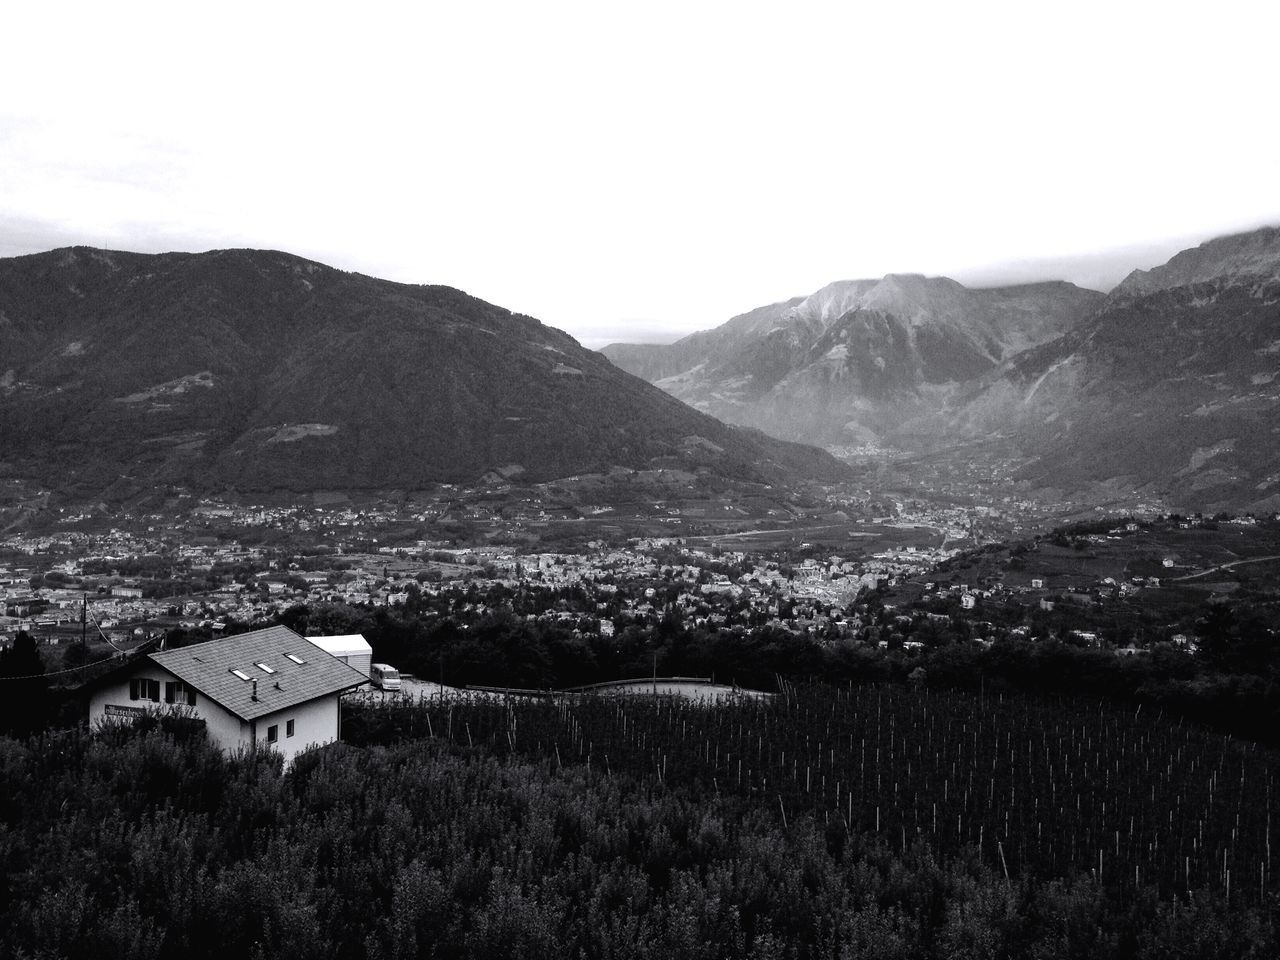 Alto Adige Sudtirol Landscape Landscape_Collection Landscape_photography EyeEm Nature Lover Blackandwhite Black And White Black & White Monochrome NEM Black&white Melancholic Landscapes